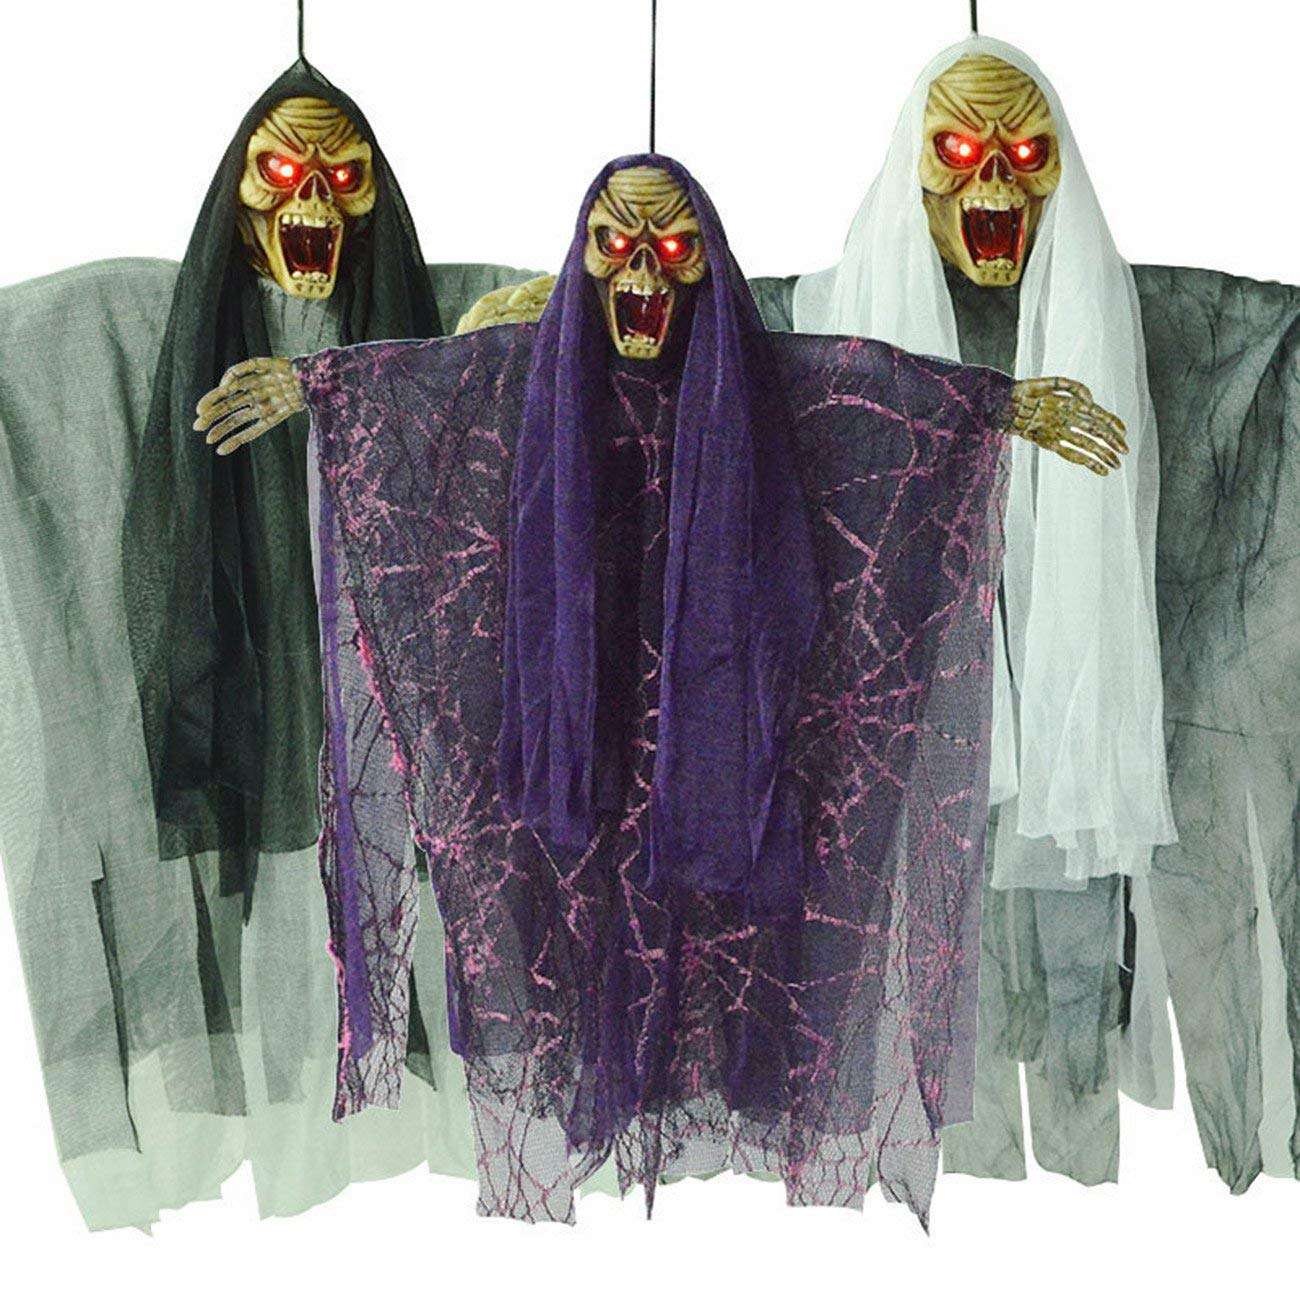 THEE 1pcs Hanging Animated Talking Witch Halloween Haunted House Prop Decor